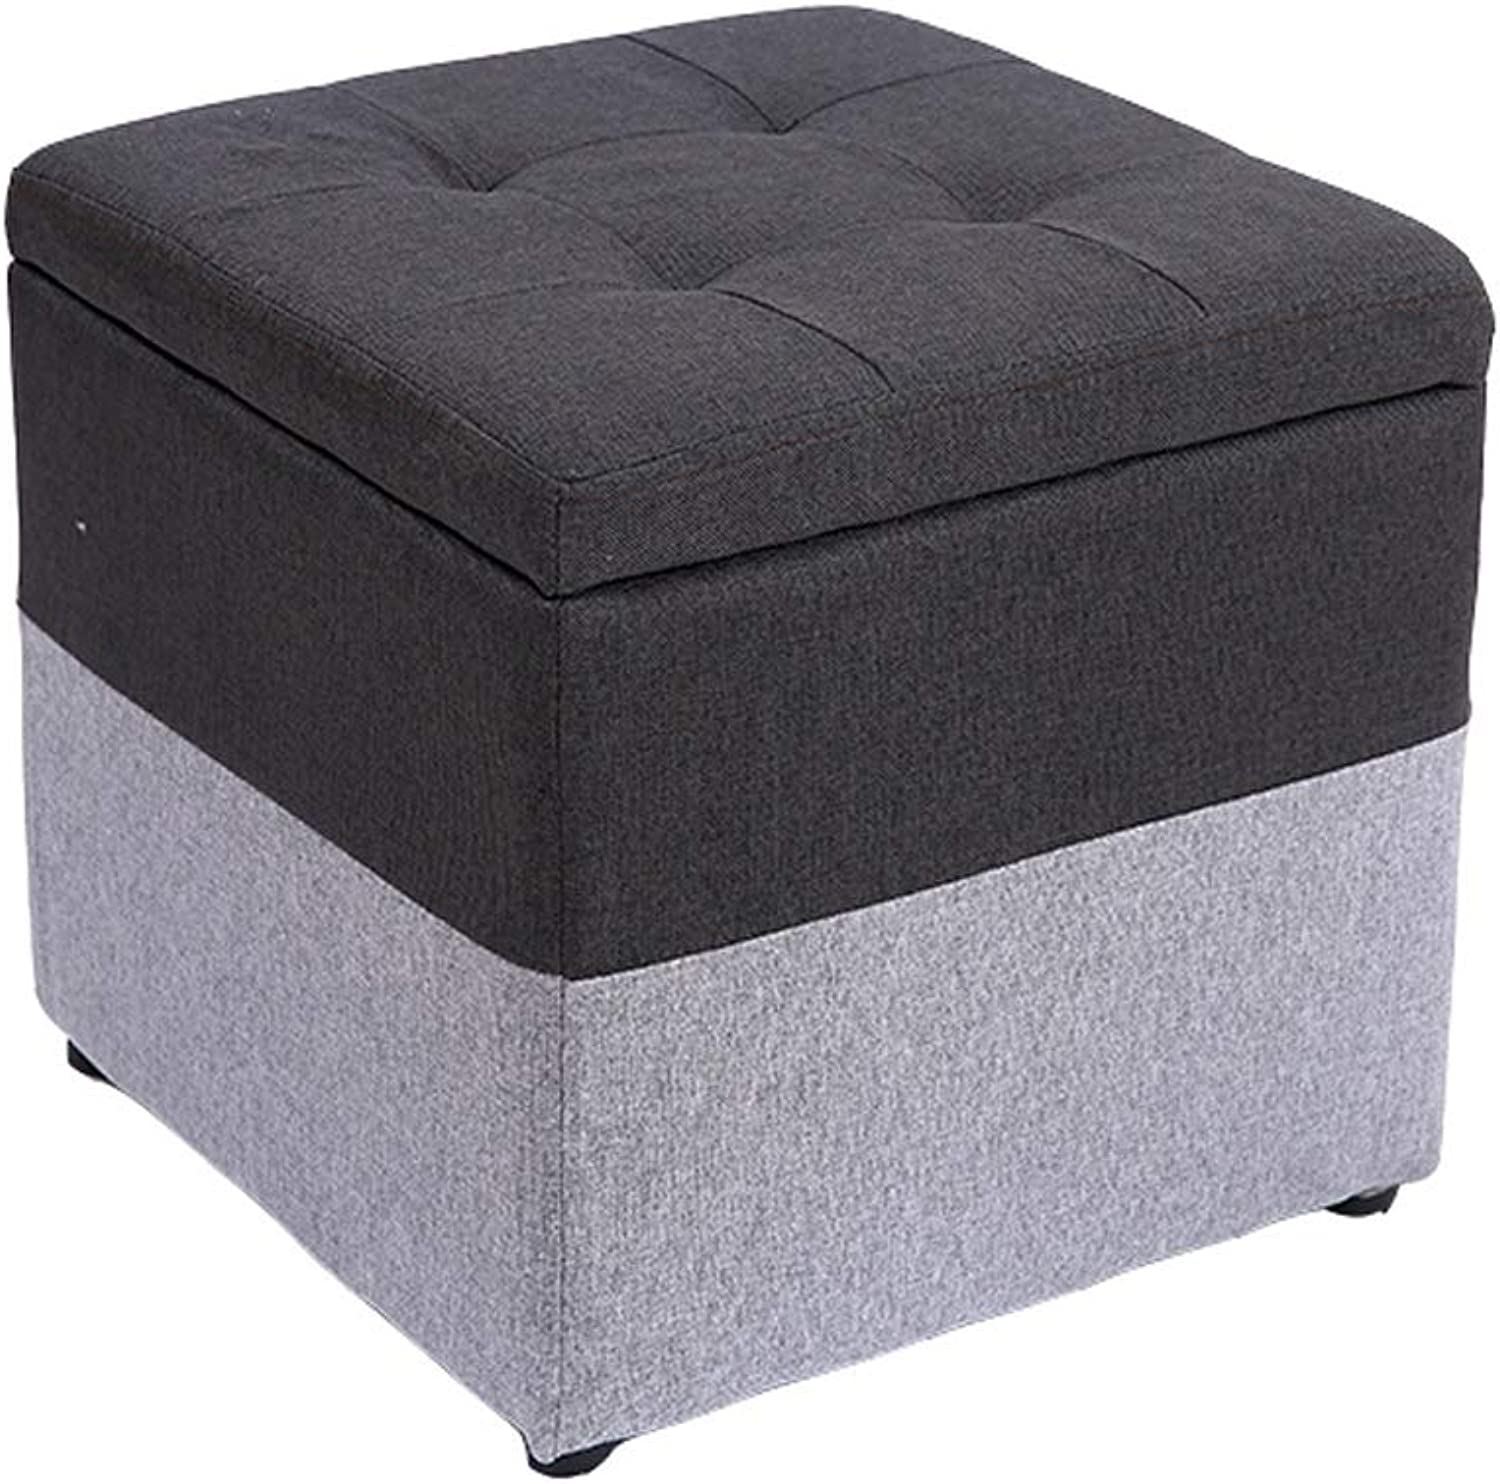 Wei Zhe- Storage Stool Fabric Stool Storage Stool Fashion shoes Bench Storage Stool Living Room Coffee Table Sofa Stool Creative Stool Short Pier -40  40  40CM Household Storage Stool (color   A)